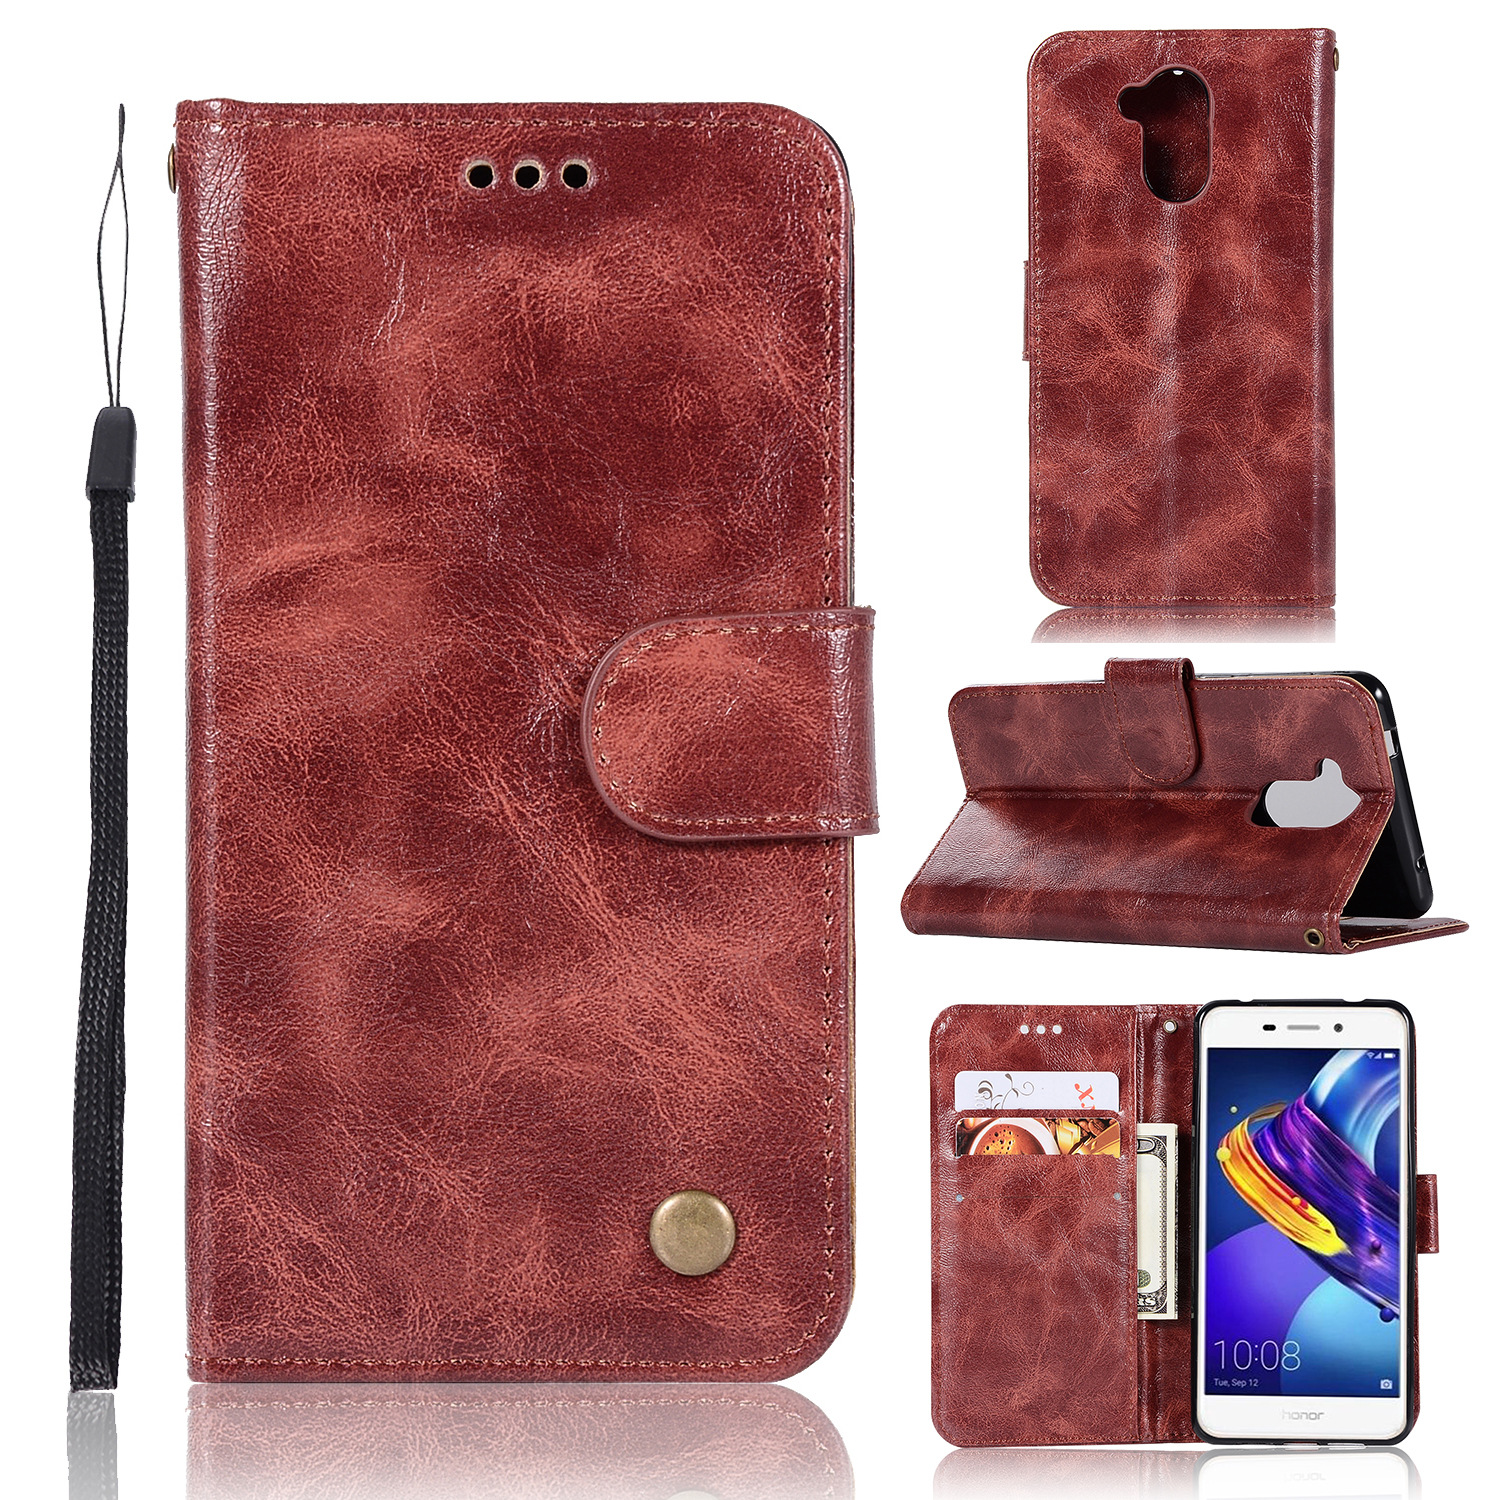 20PCS Retro Business Cases Wallet For Huawei Honor 6C Pro Case Retro Flip Book Leather Cover